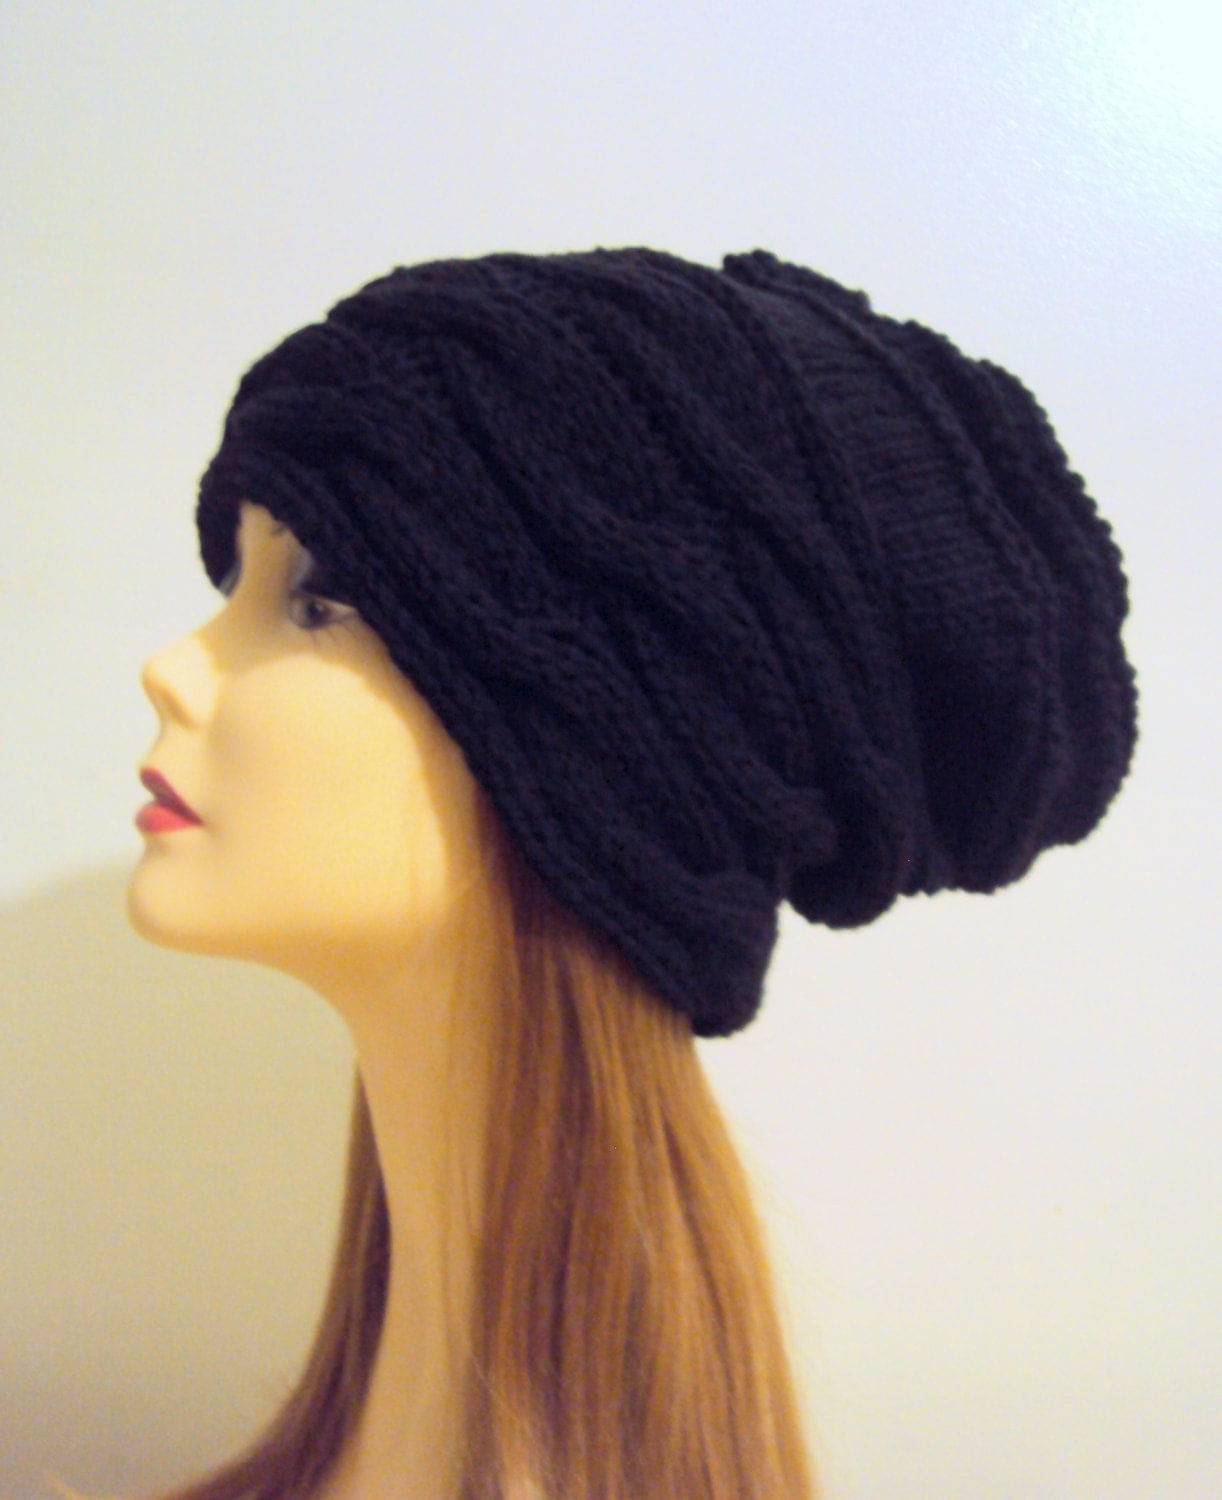 Knit Baggy Hat Chunky Hat Knit Dreadlock Hat Oversized Super